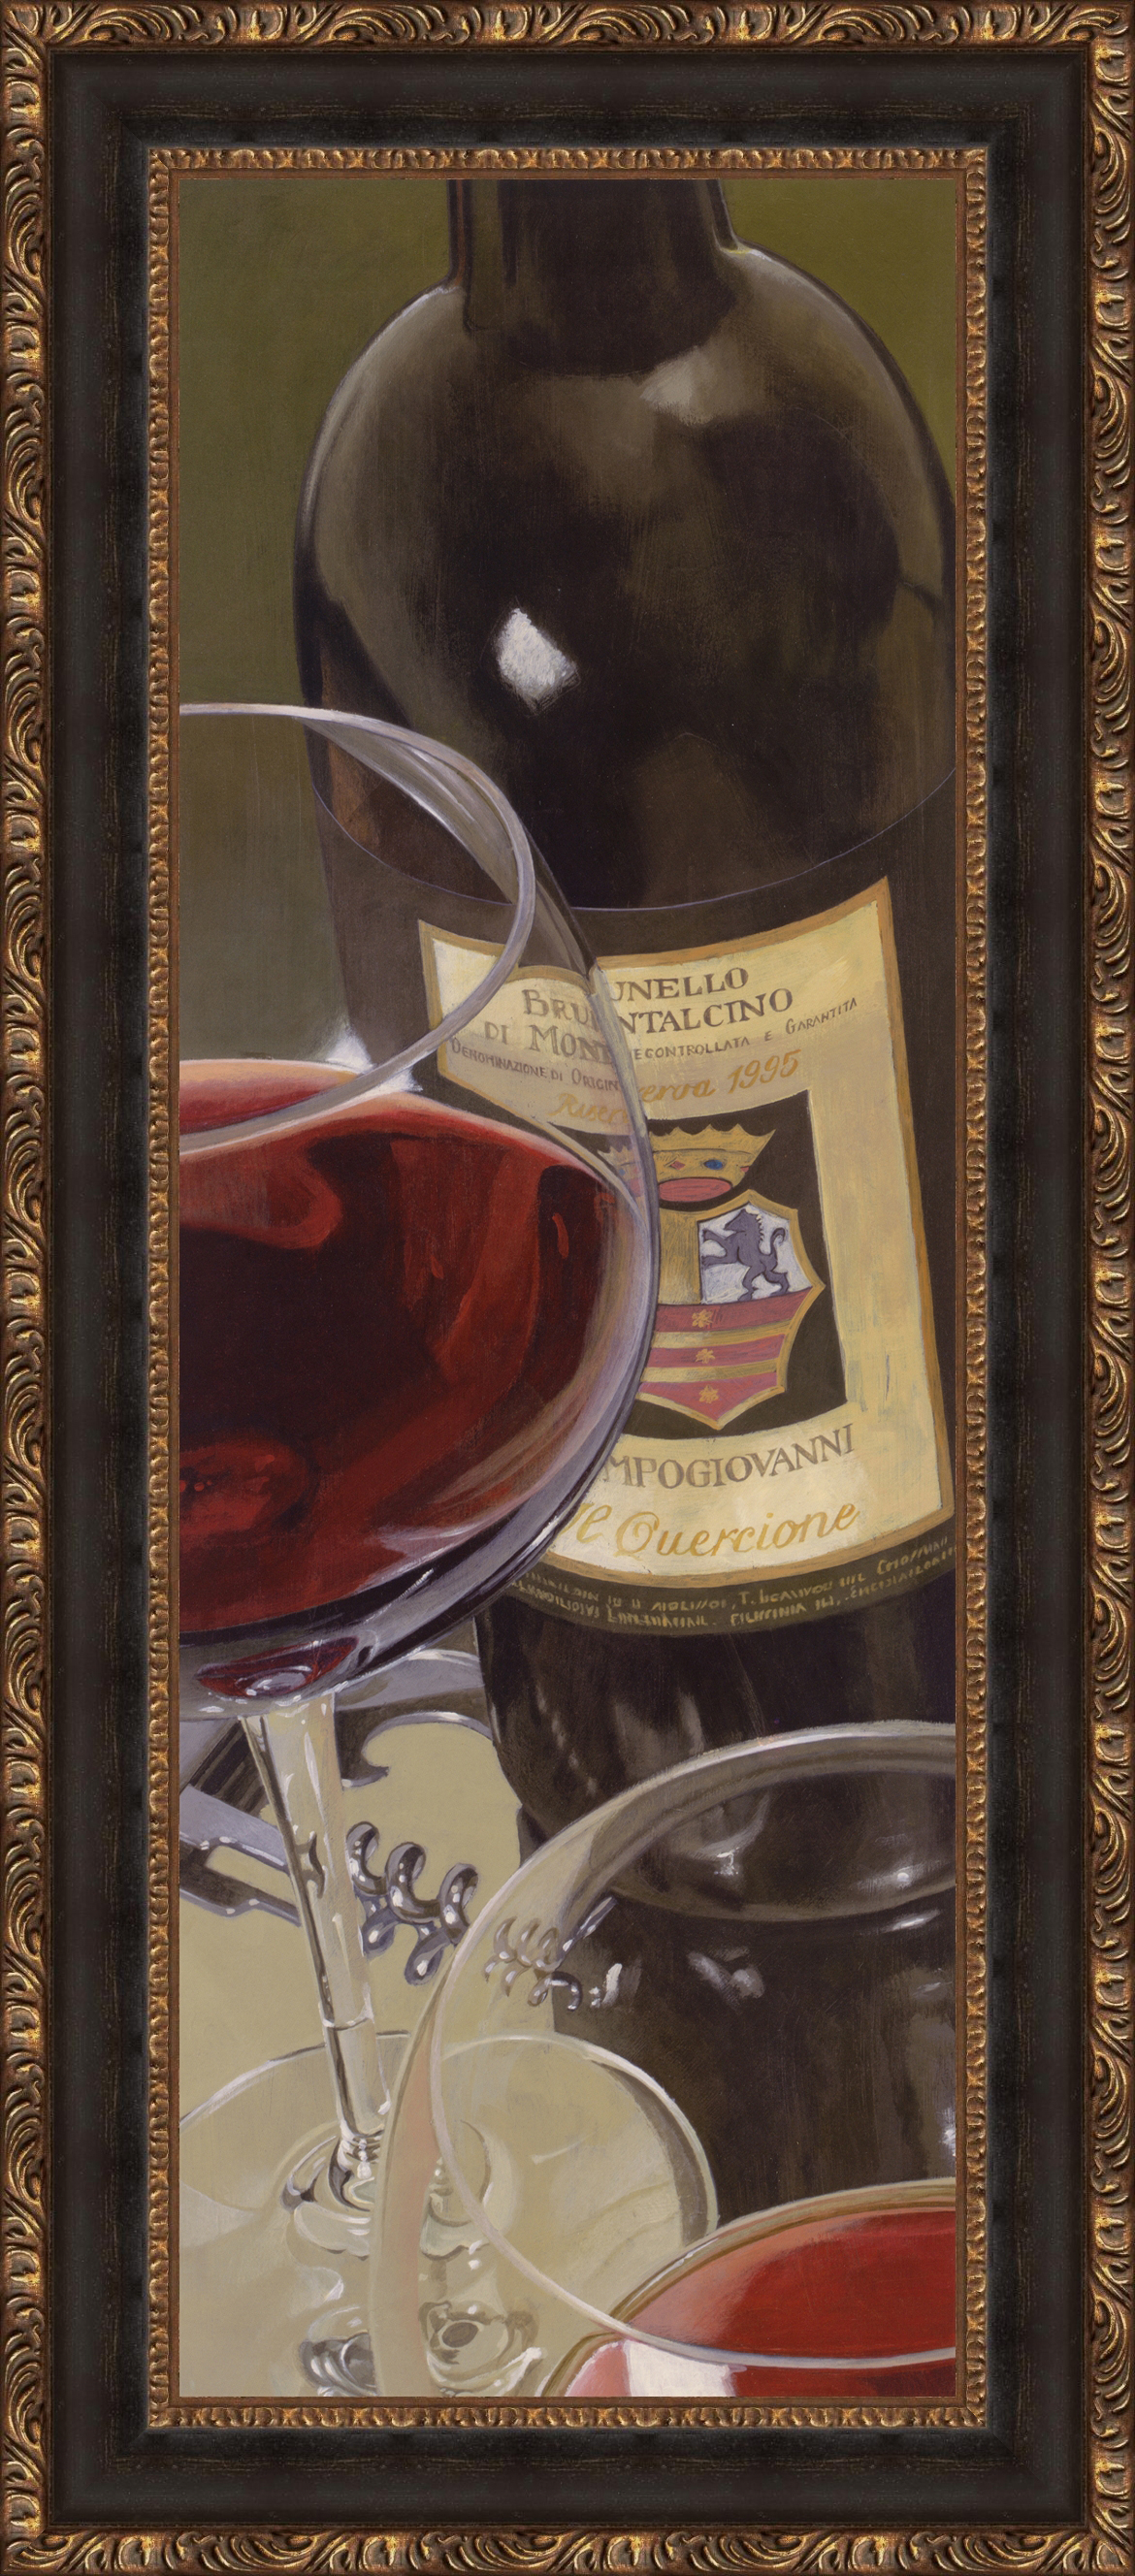 Brunello di Montalcino by Ferreri